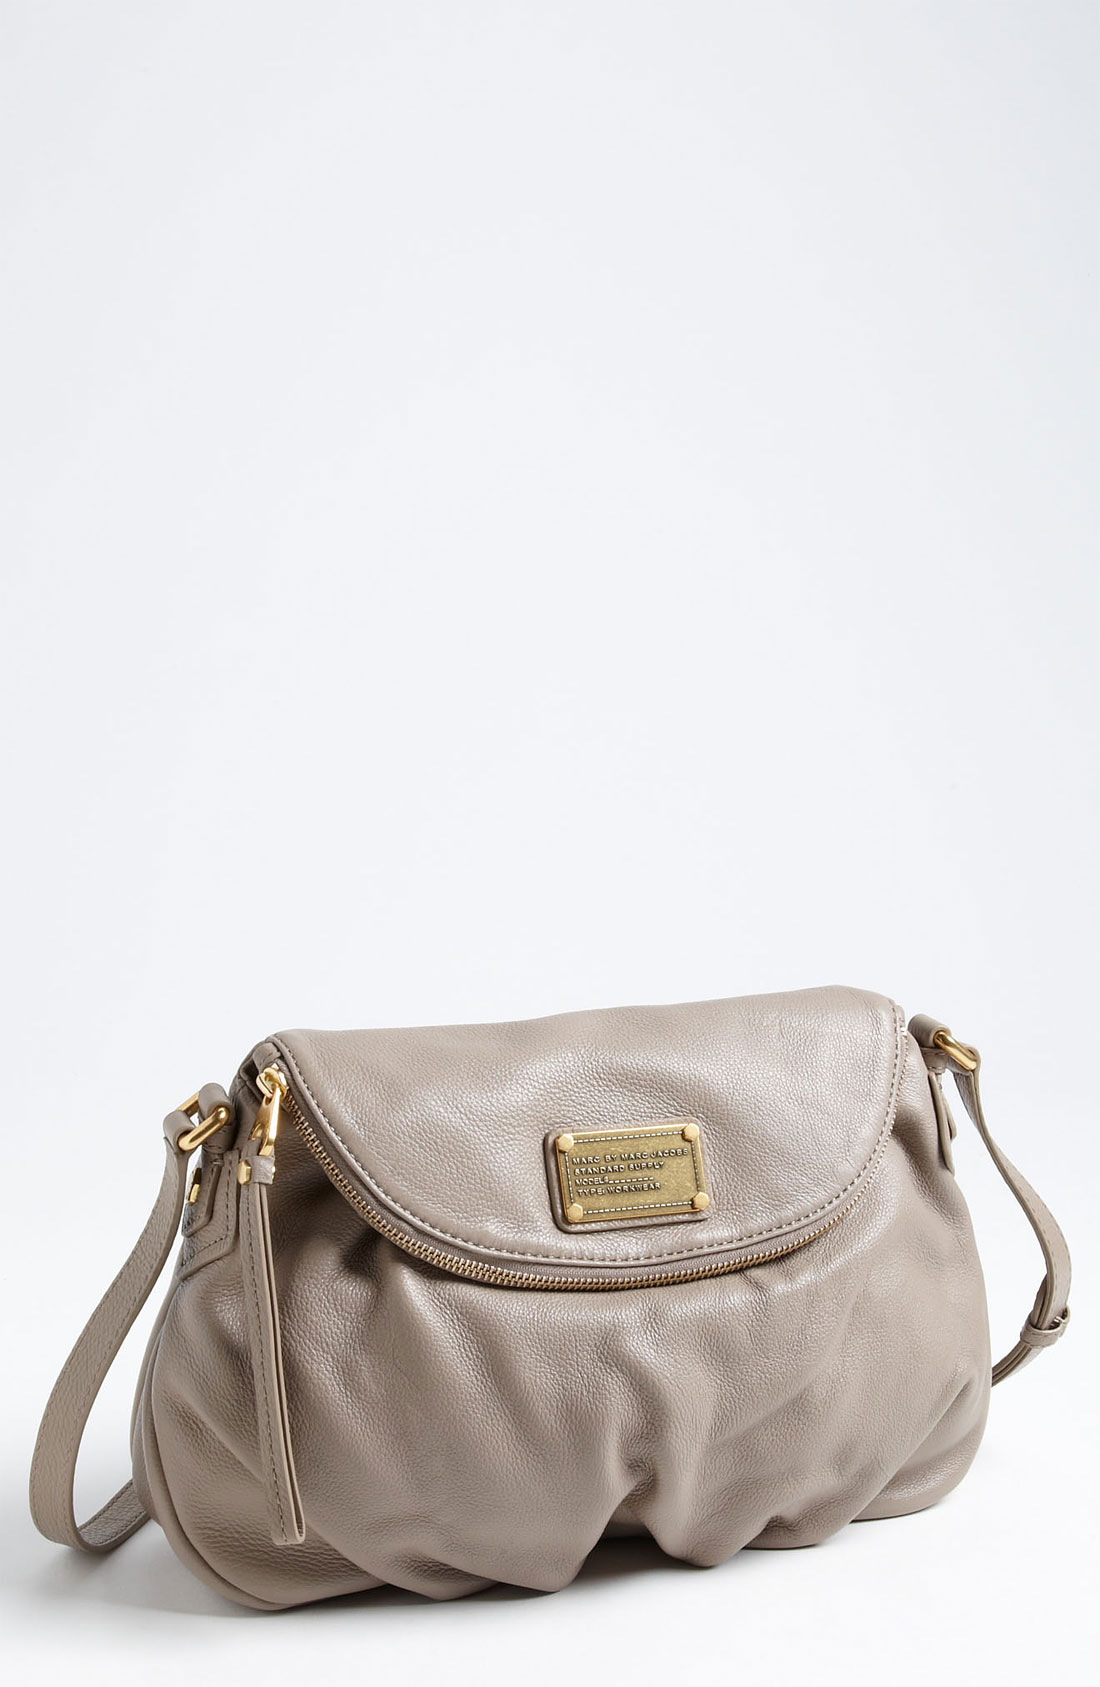 Marc Jacobs Natasha Crossbody Handbags